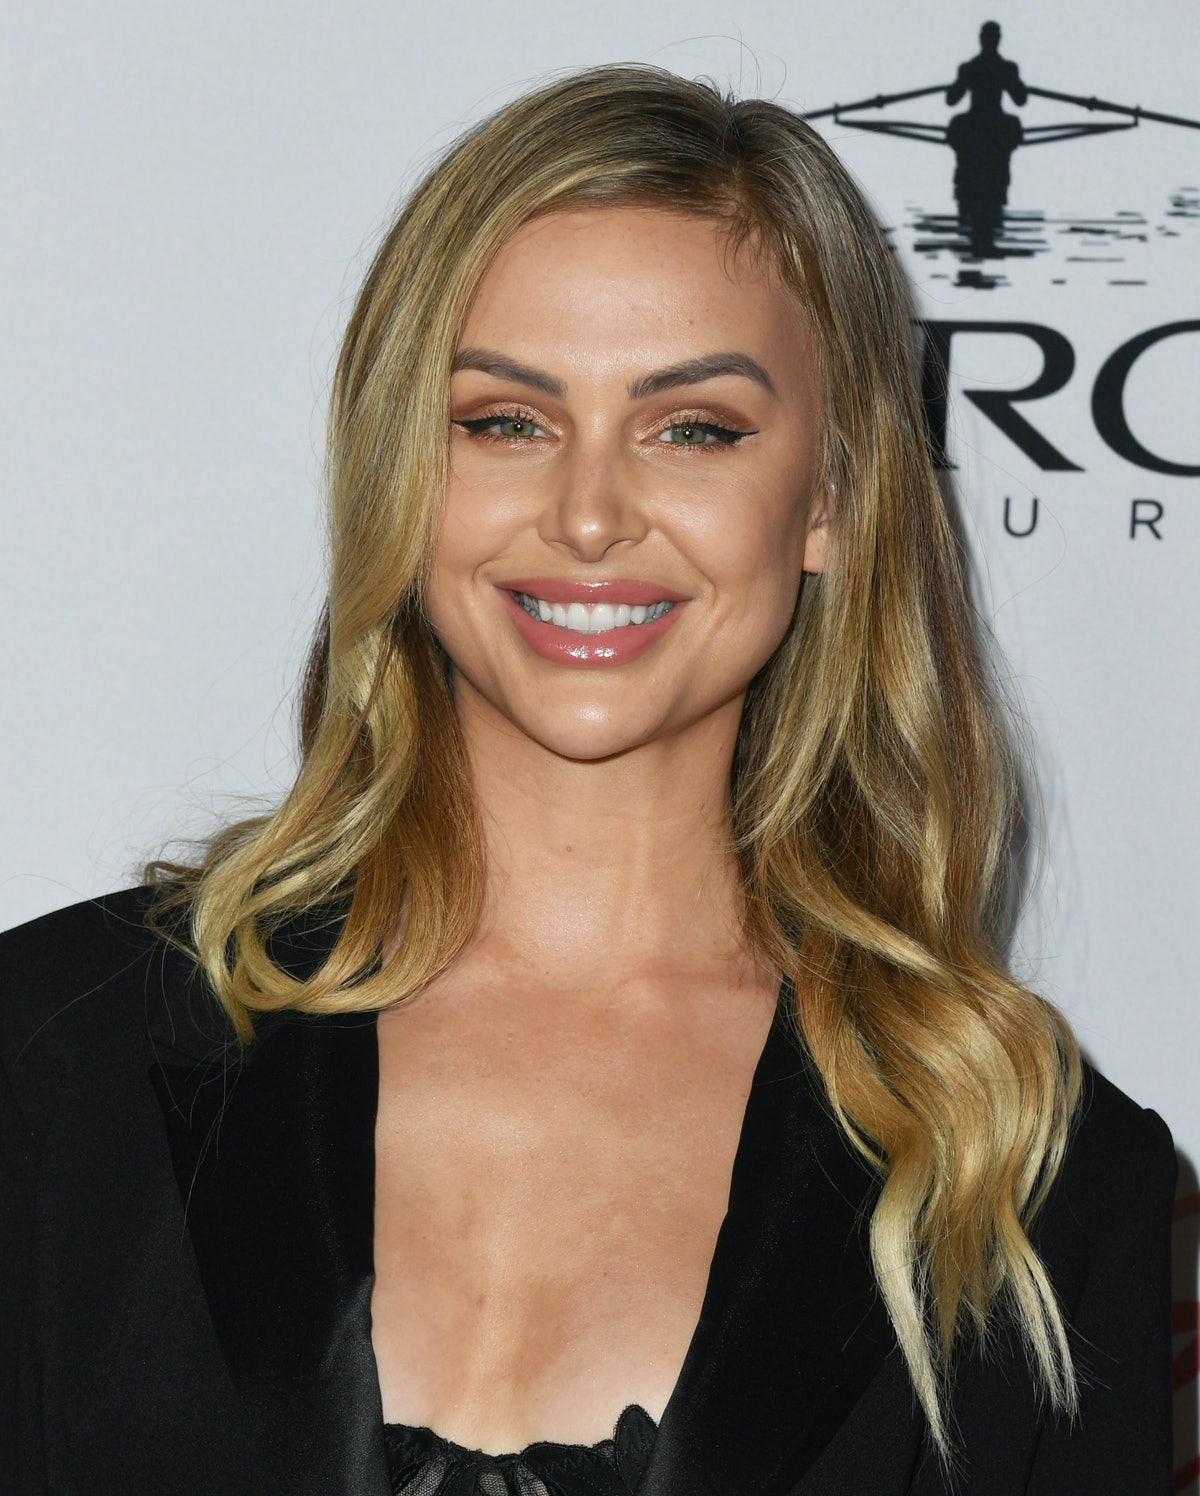 'Vanderpump Rules' Star Lala Kent Celebrated 6 Months Of Sobriety In A Super Candid & Heartfelt Instagram